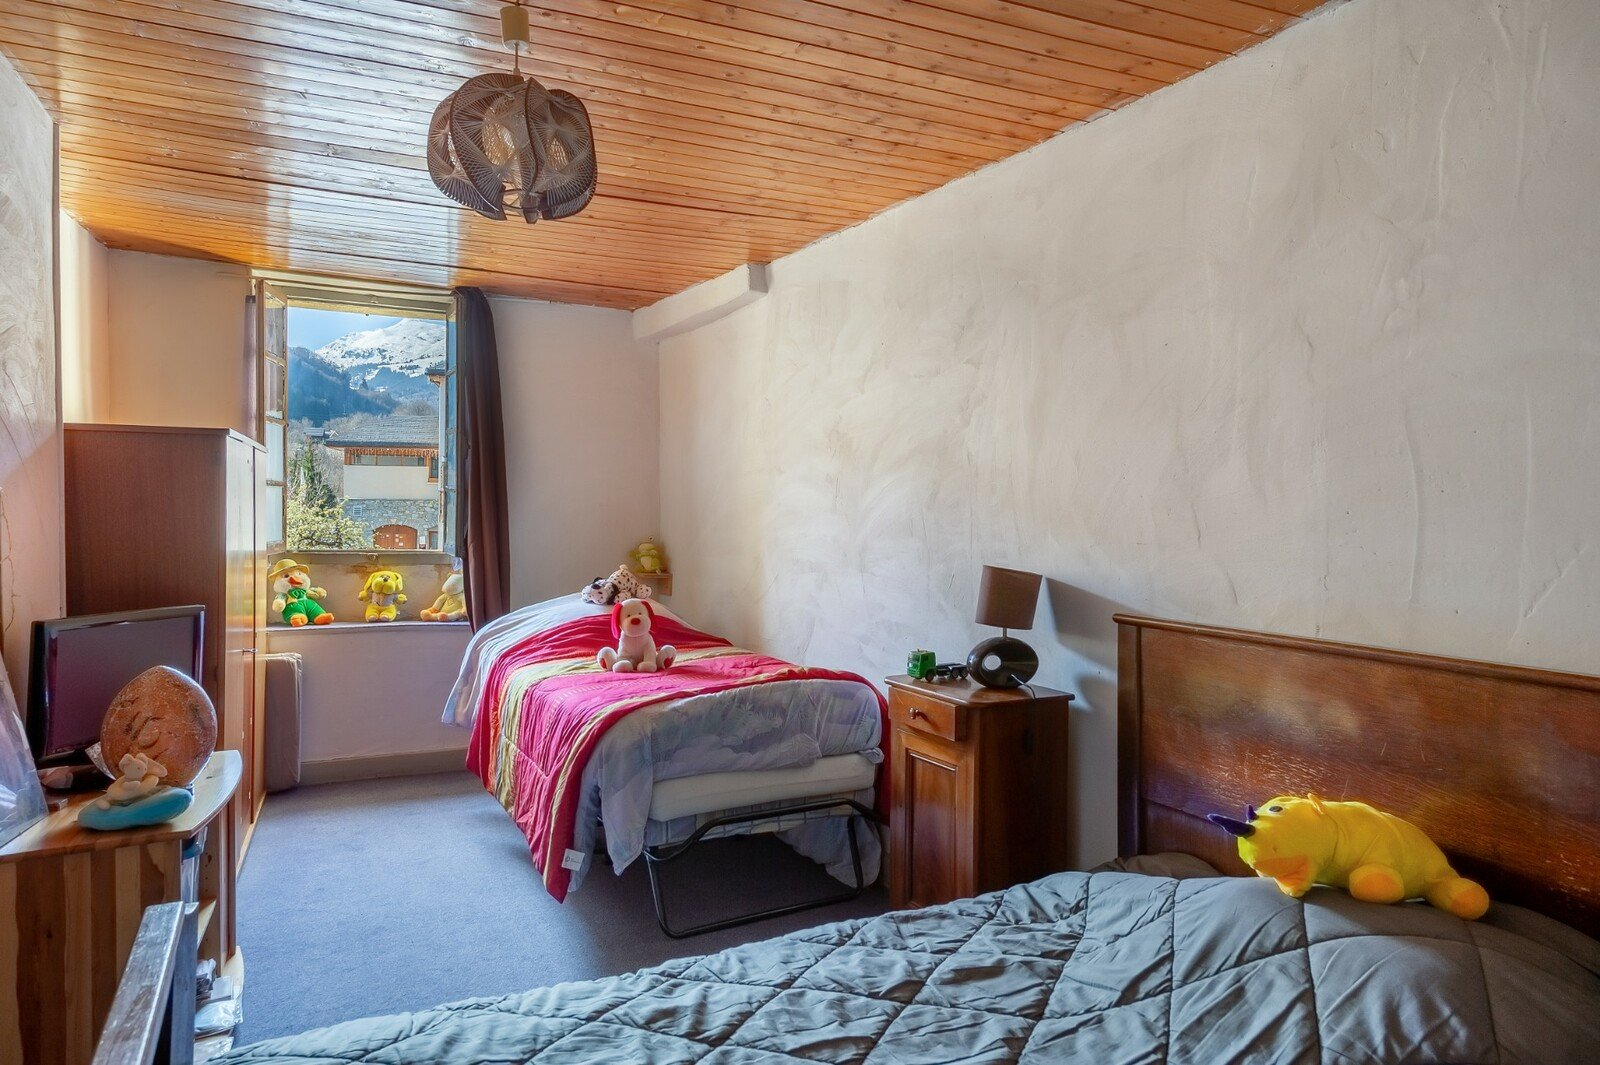 2 Apartments, large property with potential - Meribel Les Allues